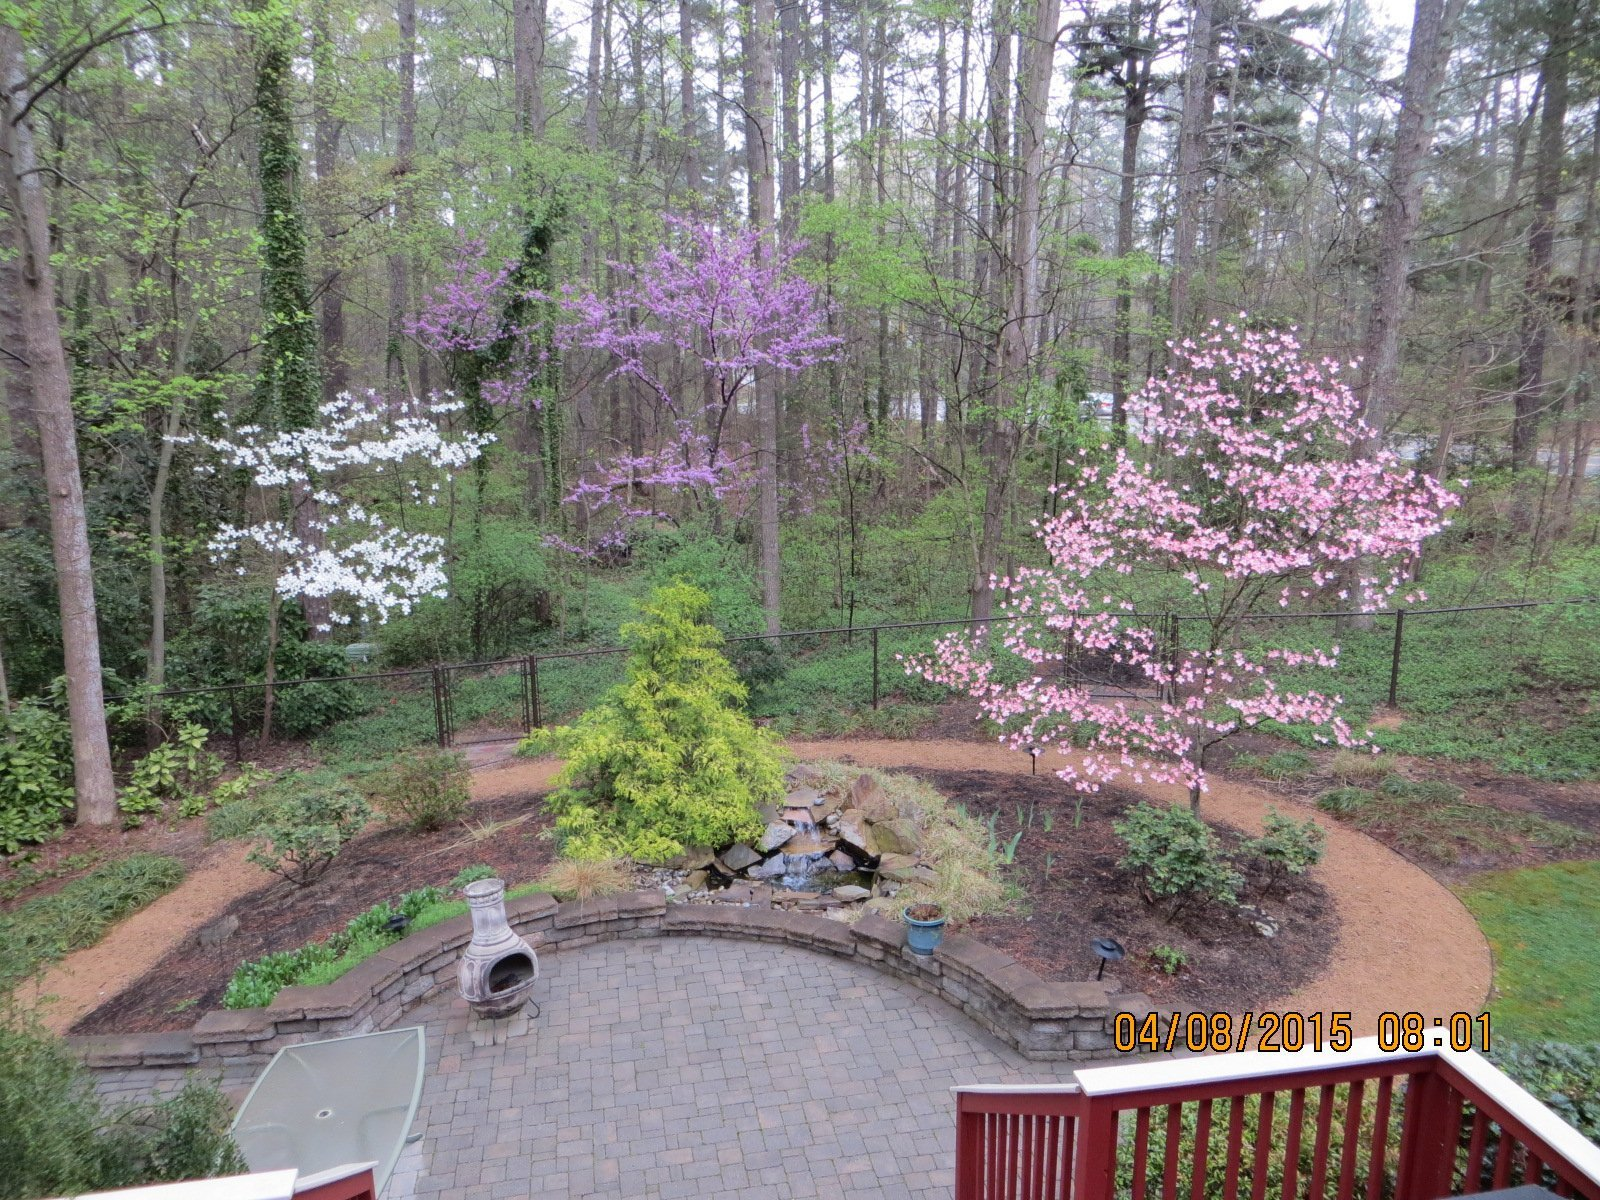 Landscapped Yard in Spring Bloom